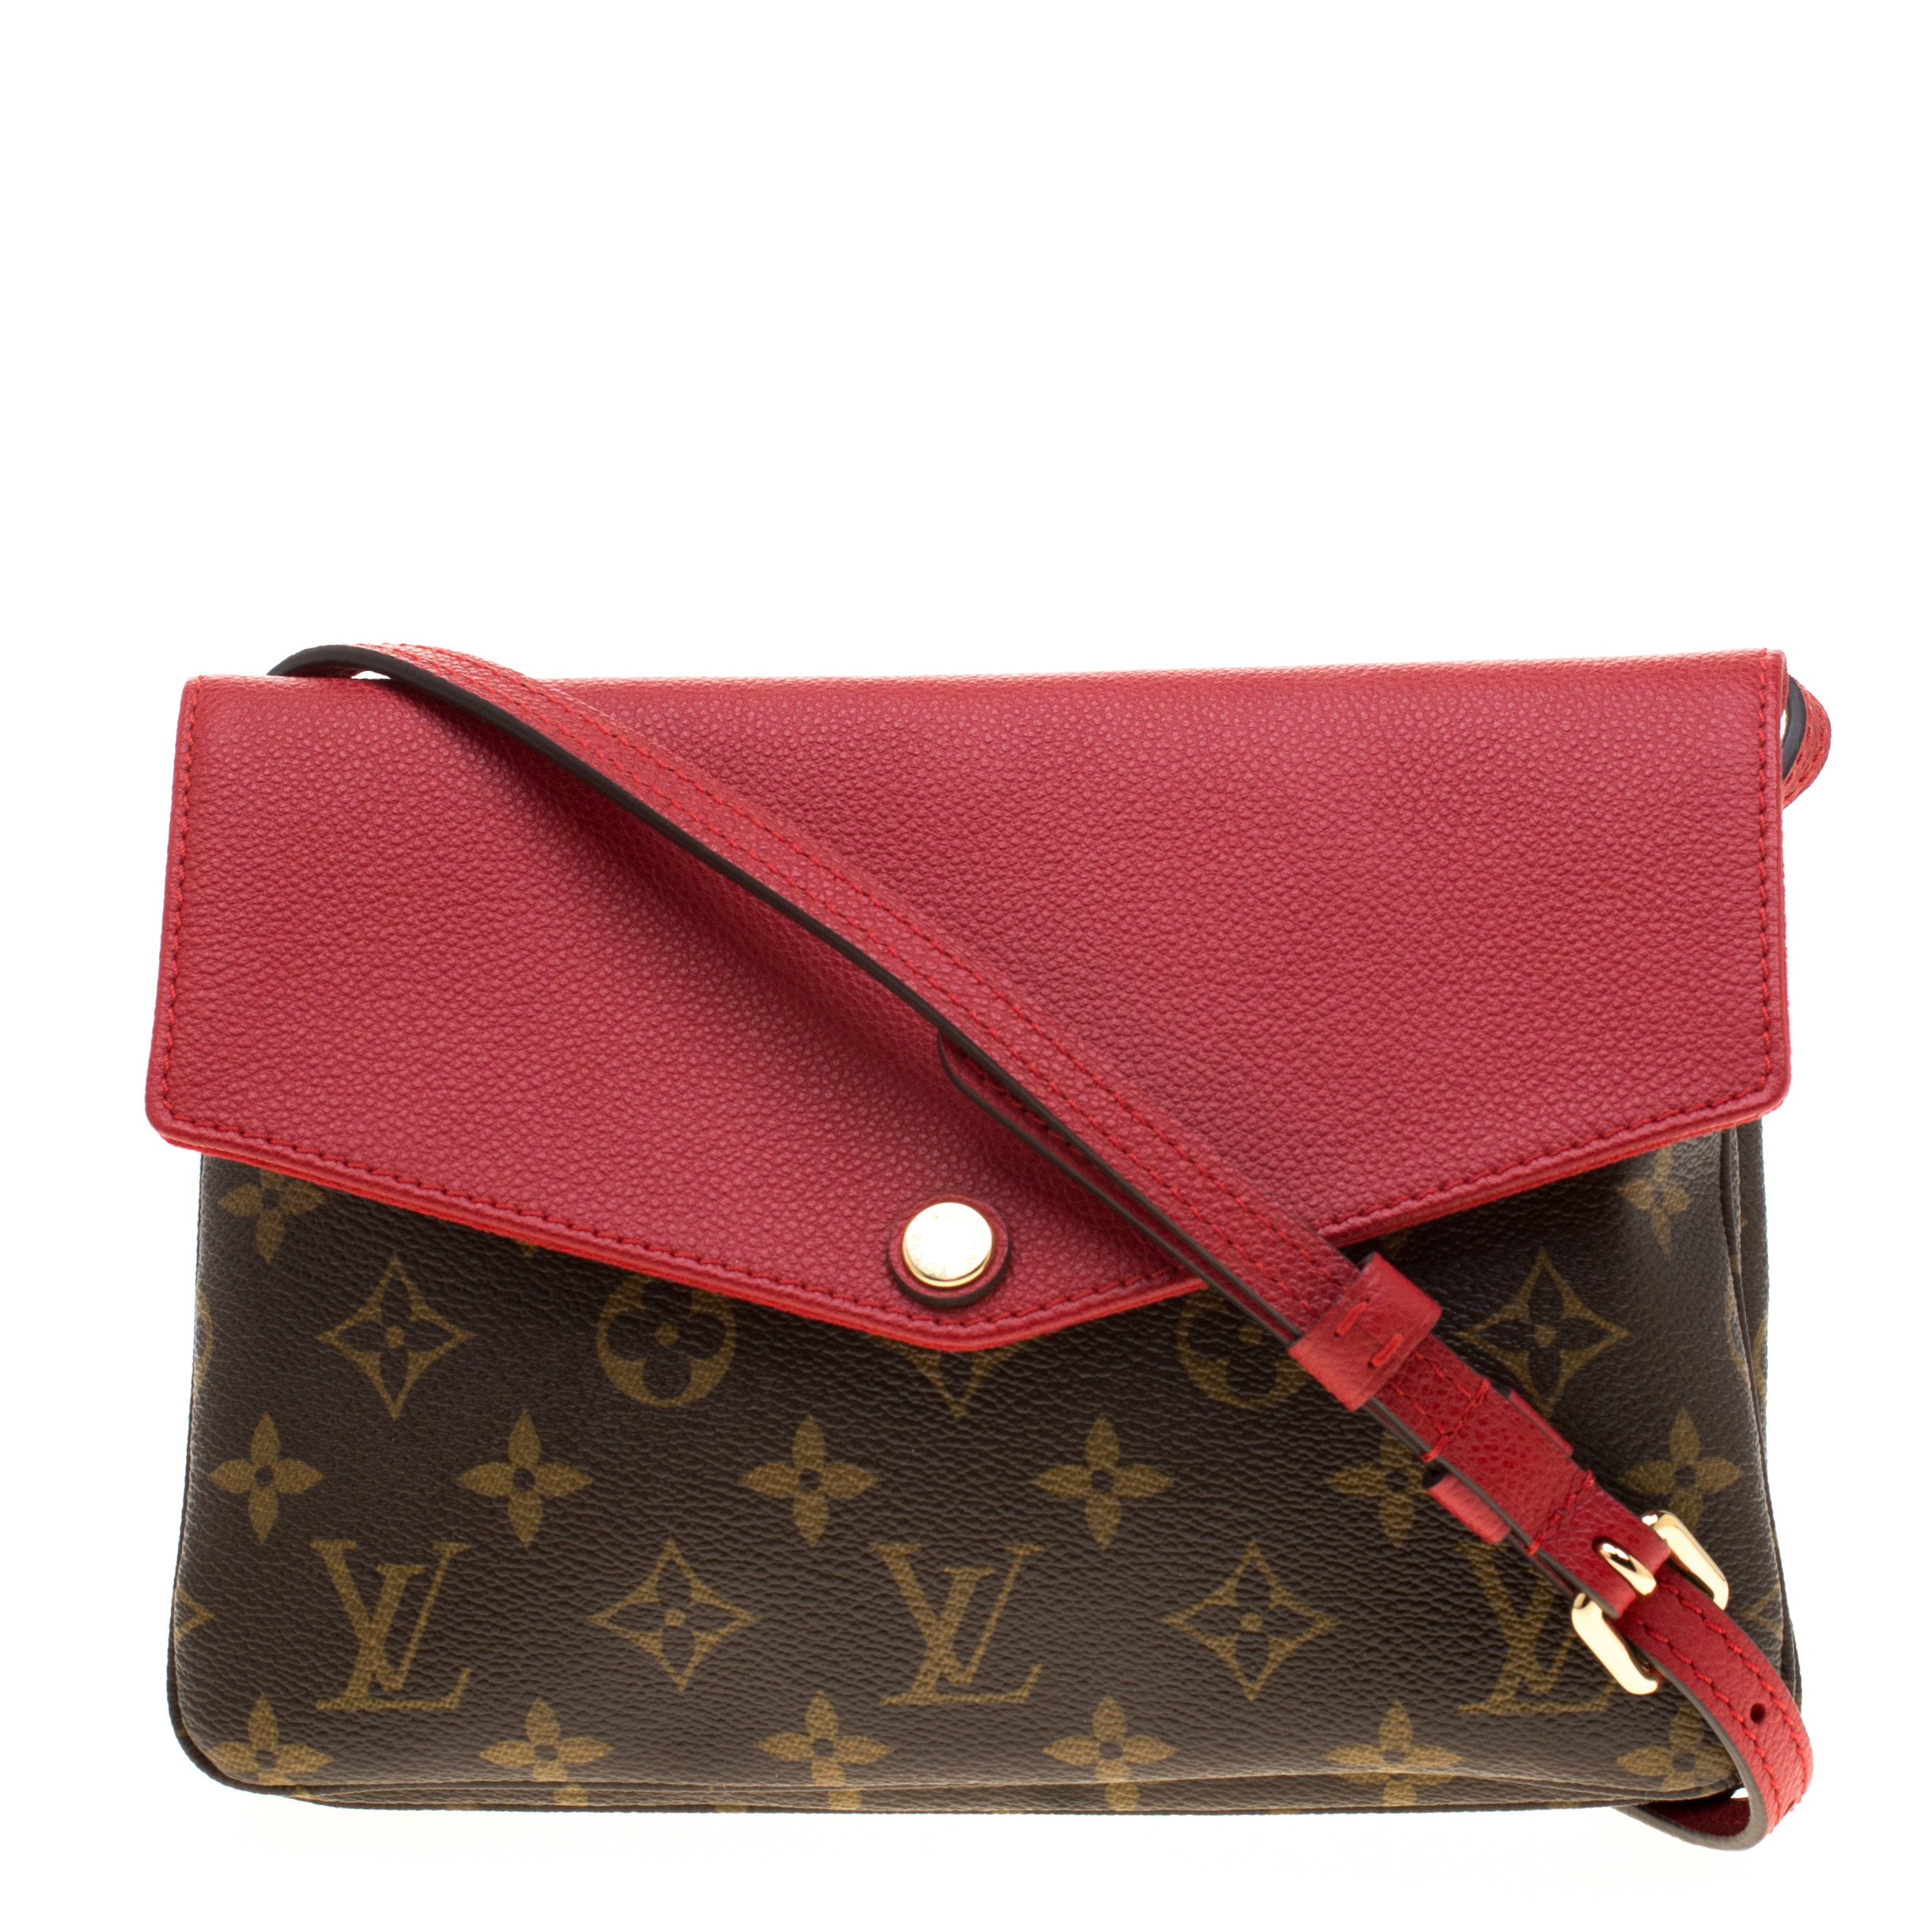 a4daeb005 ... Louis Vuitton Cherry Monogram Canvas and Leather Twice Bag. nextprev.  prevnext